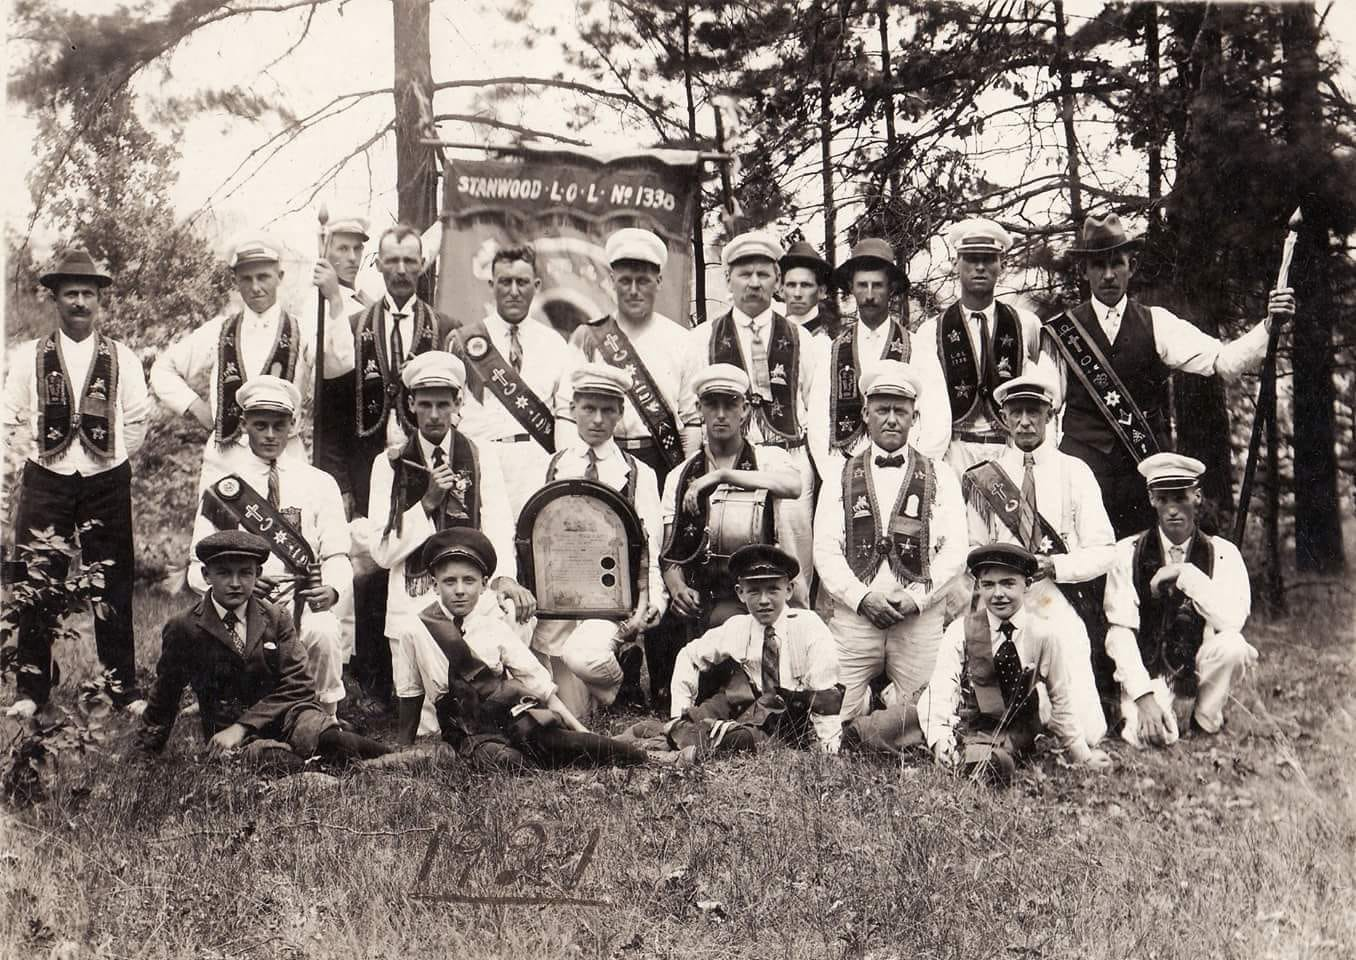 Stanwood Loyal Orange Band 1921 ………….PHOTO received from Jeff Kent